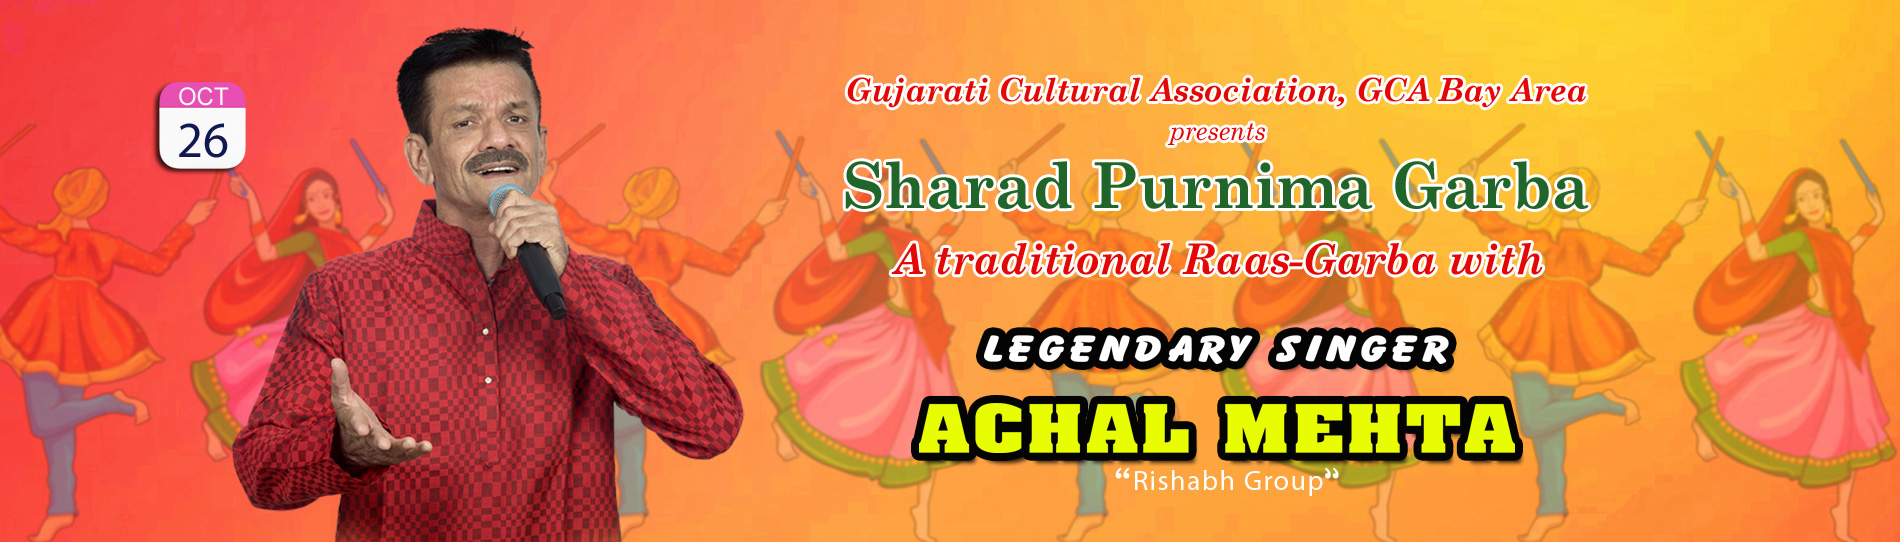 EventMozo GCA presents Sharad Purnima Garba